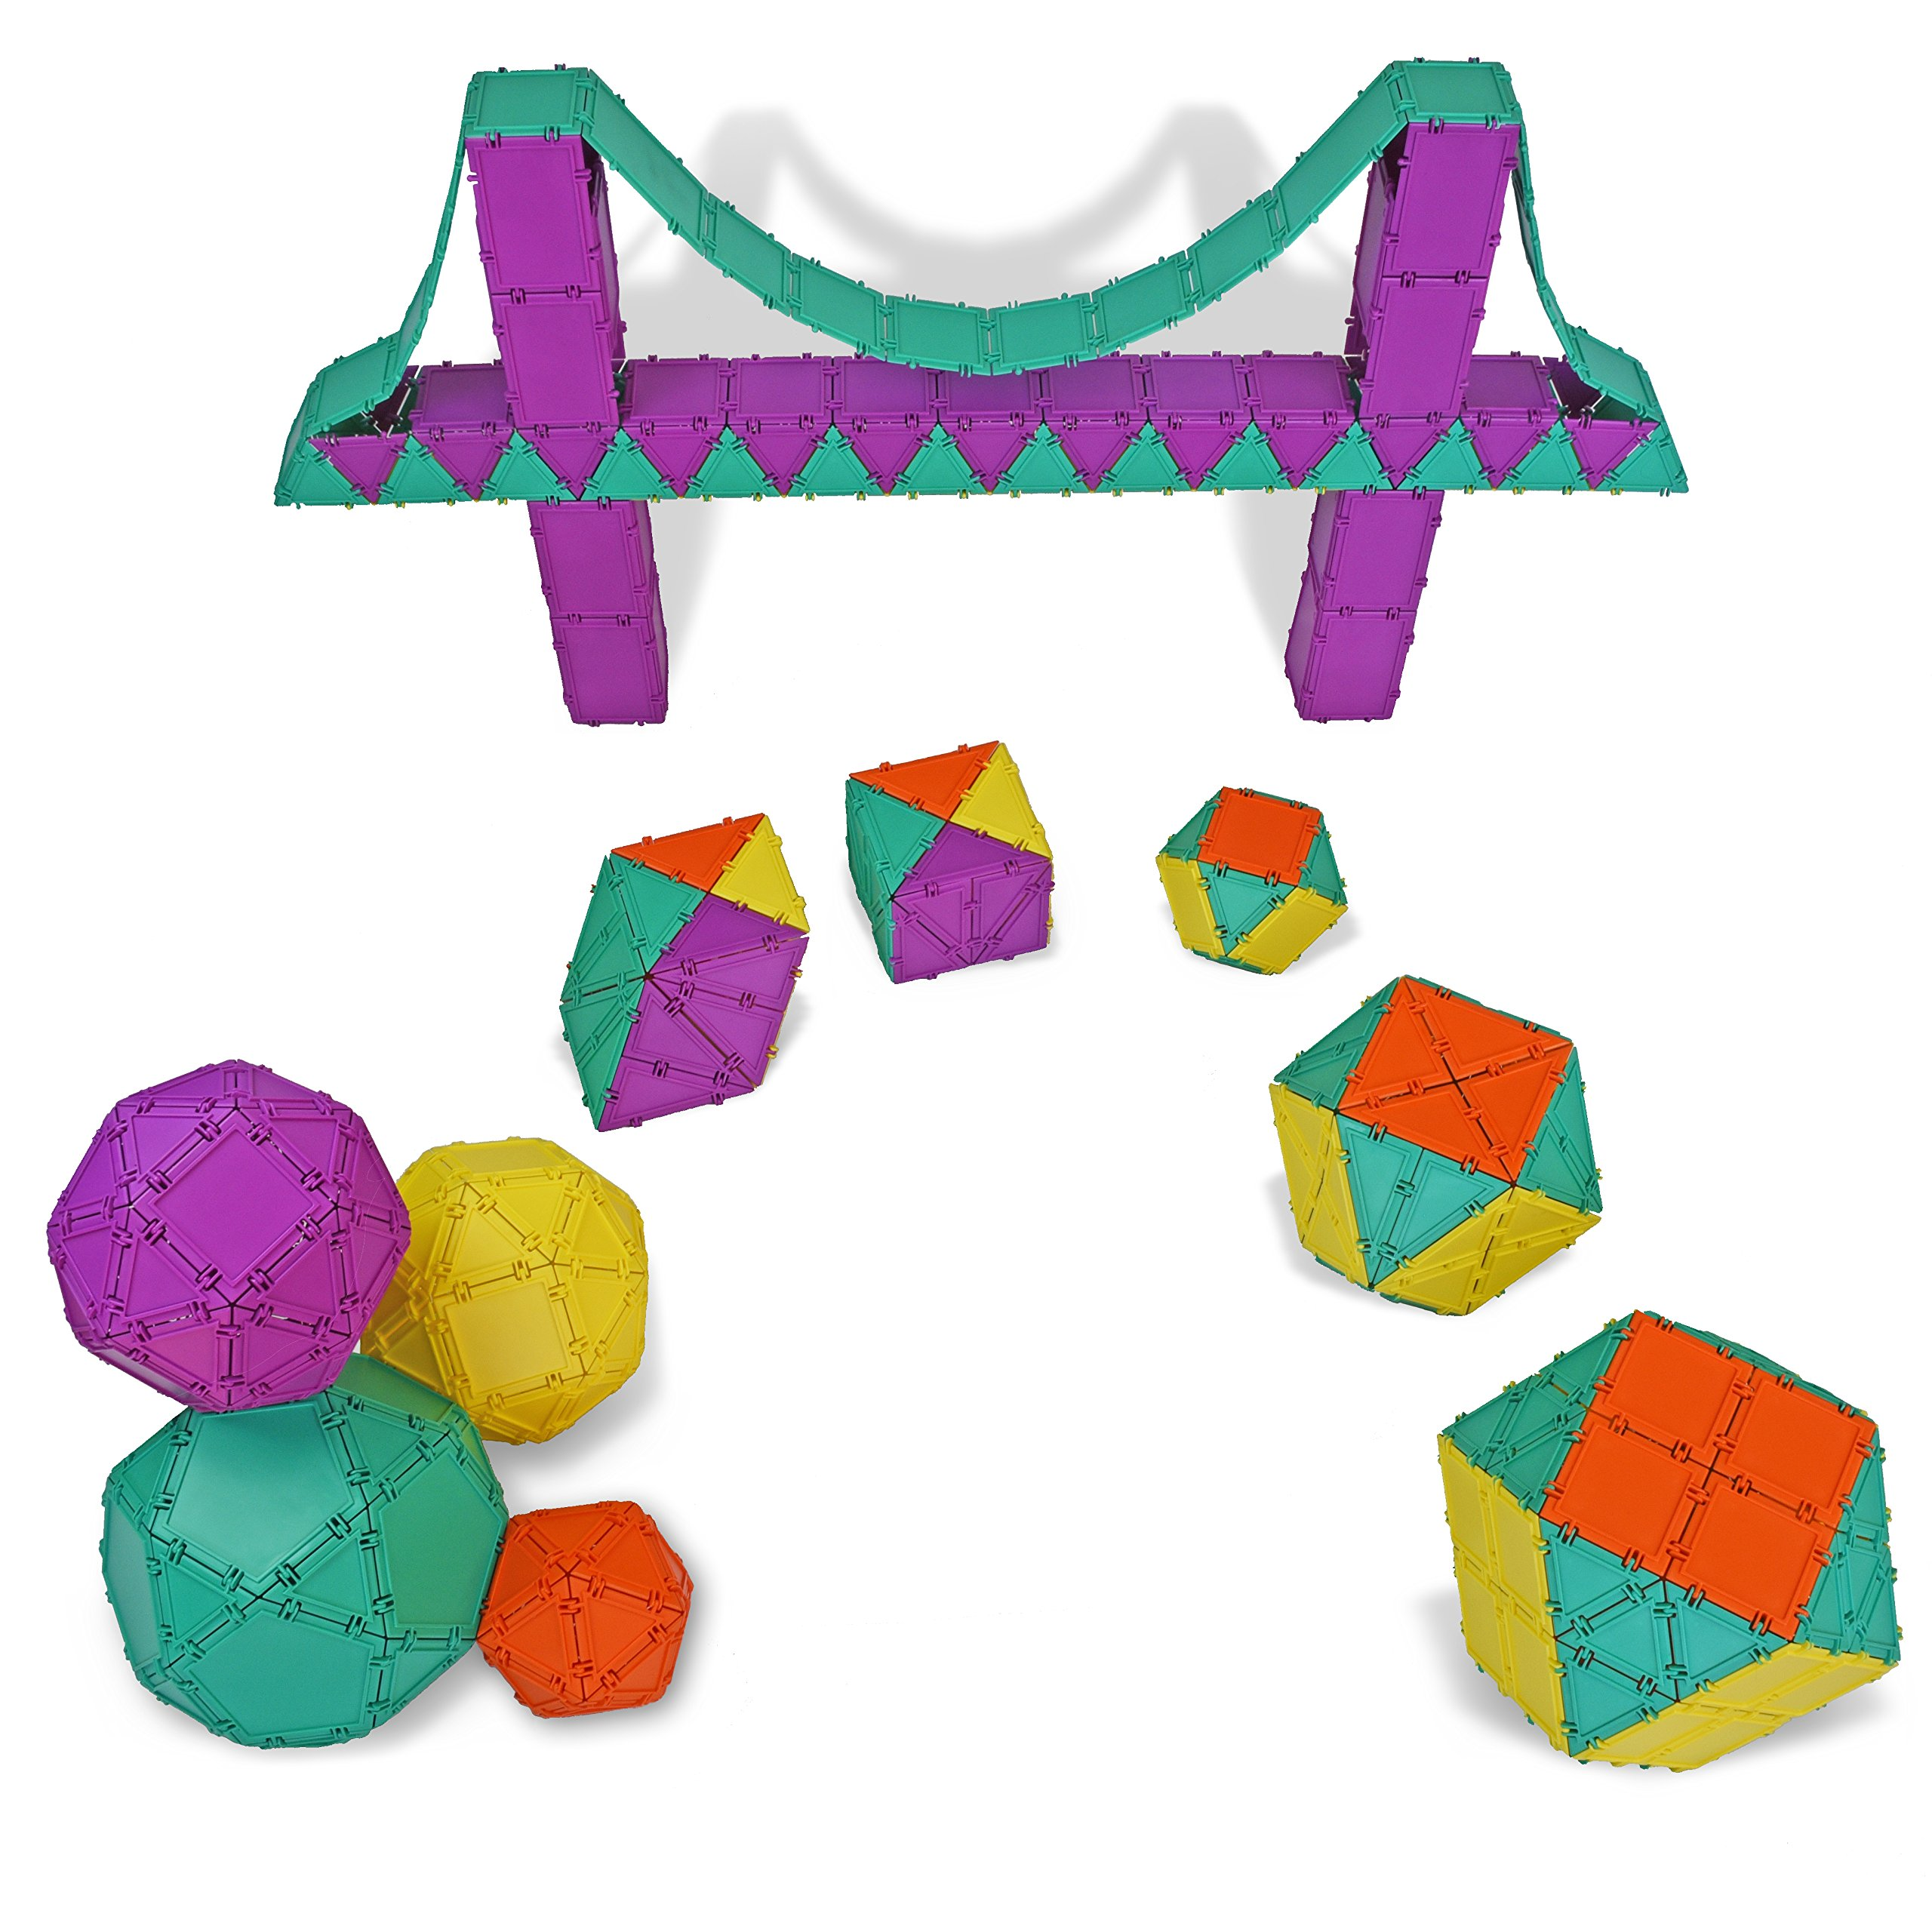 Geometiles 3D Building Set for Learning Math, Includes Many Online Activities, Jumbo Size, 512-pc, Made in USA